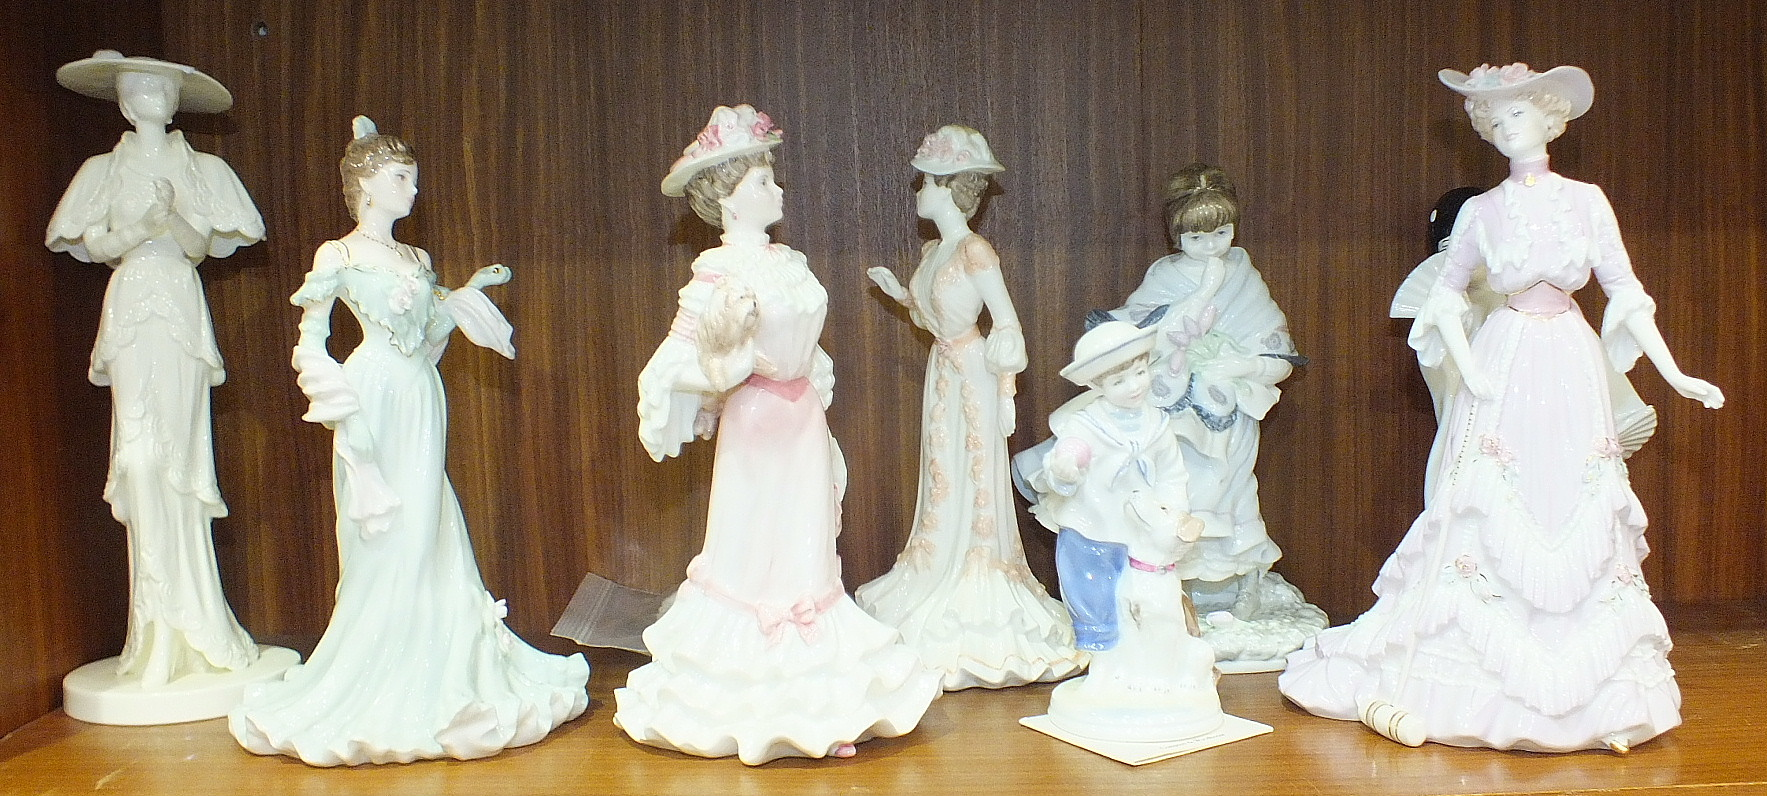 A collection of Coalport figurines, including 'High Society' and 'John Bromley', (some damages), (